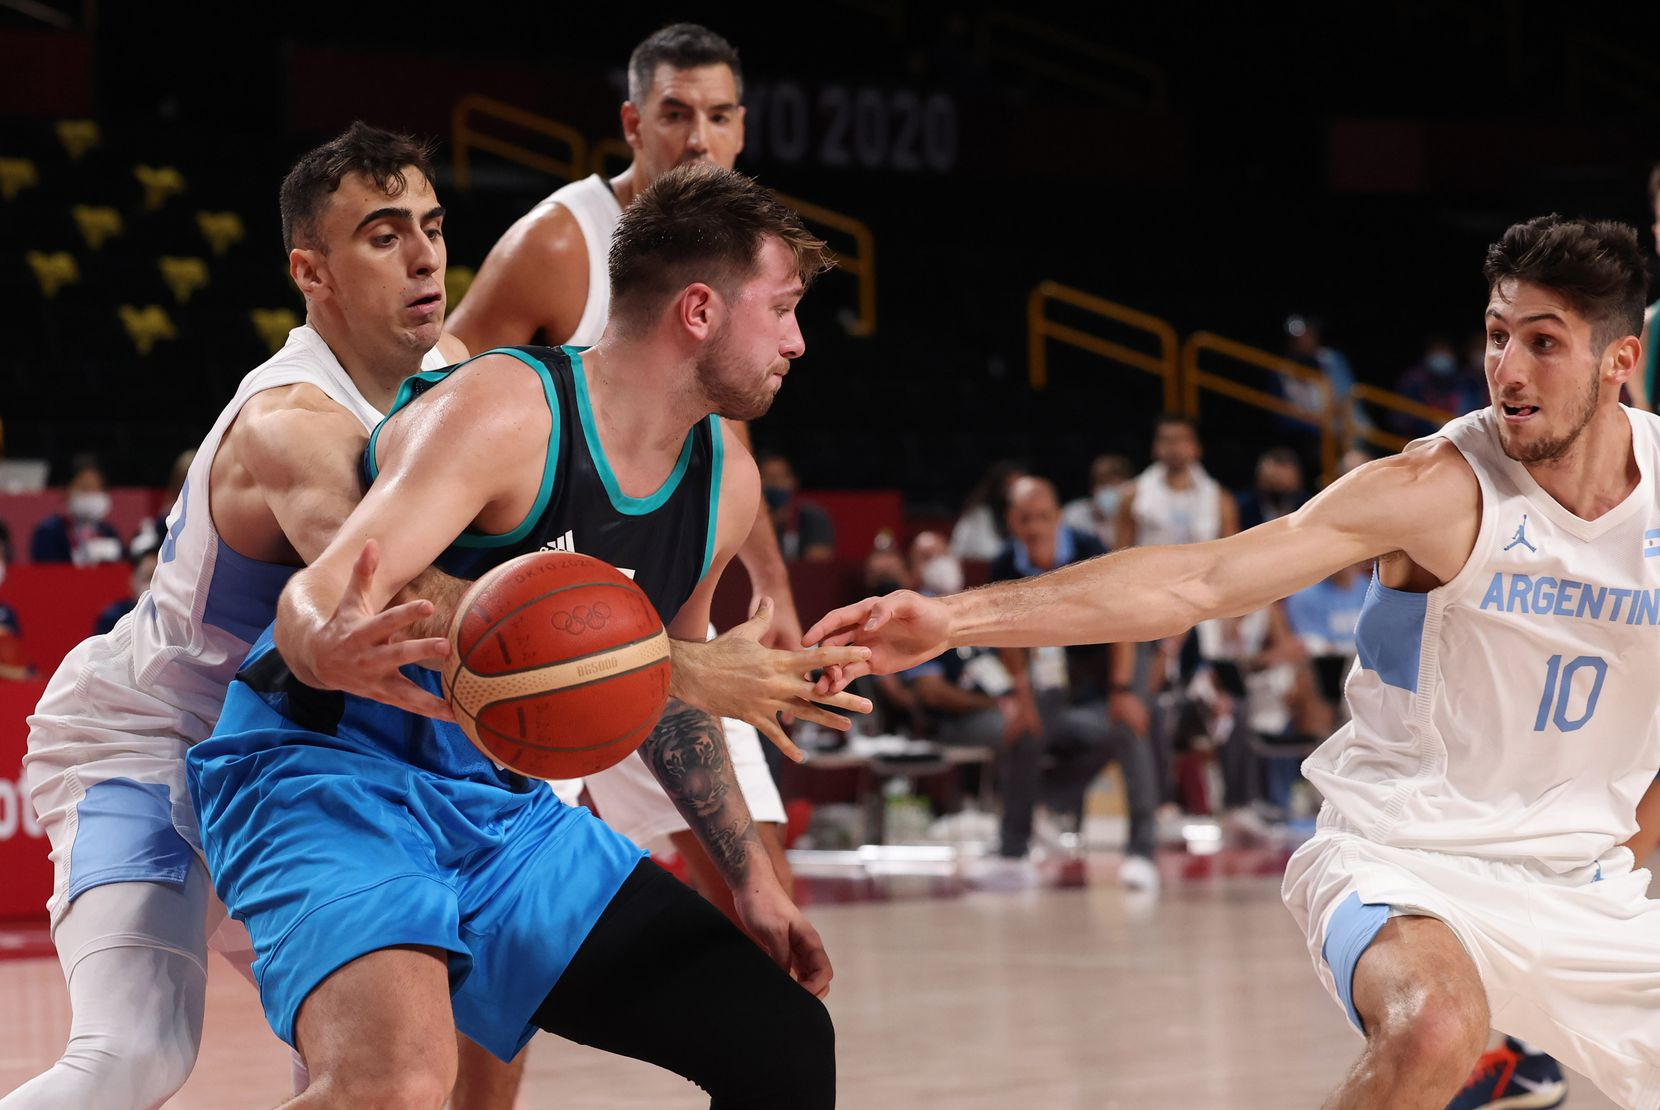 Slovenia's Luka Doncic (77) is defended by Argentina's Juan Pablo Vaulet (22) and Leandro Nicolas Bolmaro (10) in the first half of play during the postponed 2020 Tokyo Olympics at Saitama Super Arena on Monday, July 26, 2021, in Saitama, Japan. Slovenia defeated Argentina 118-100. (Vernon Bryant/The Dallas Morning News)